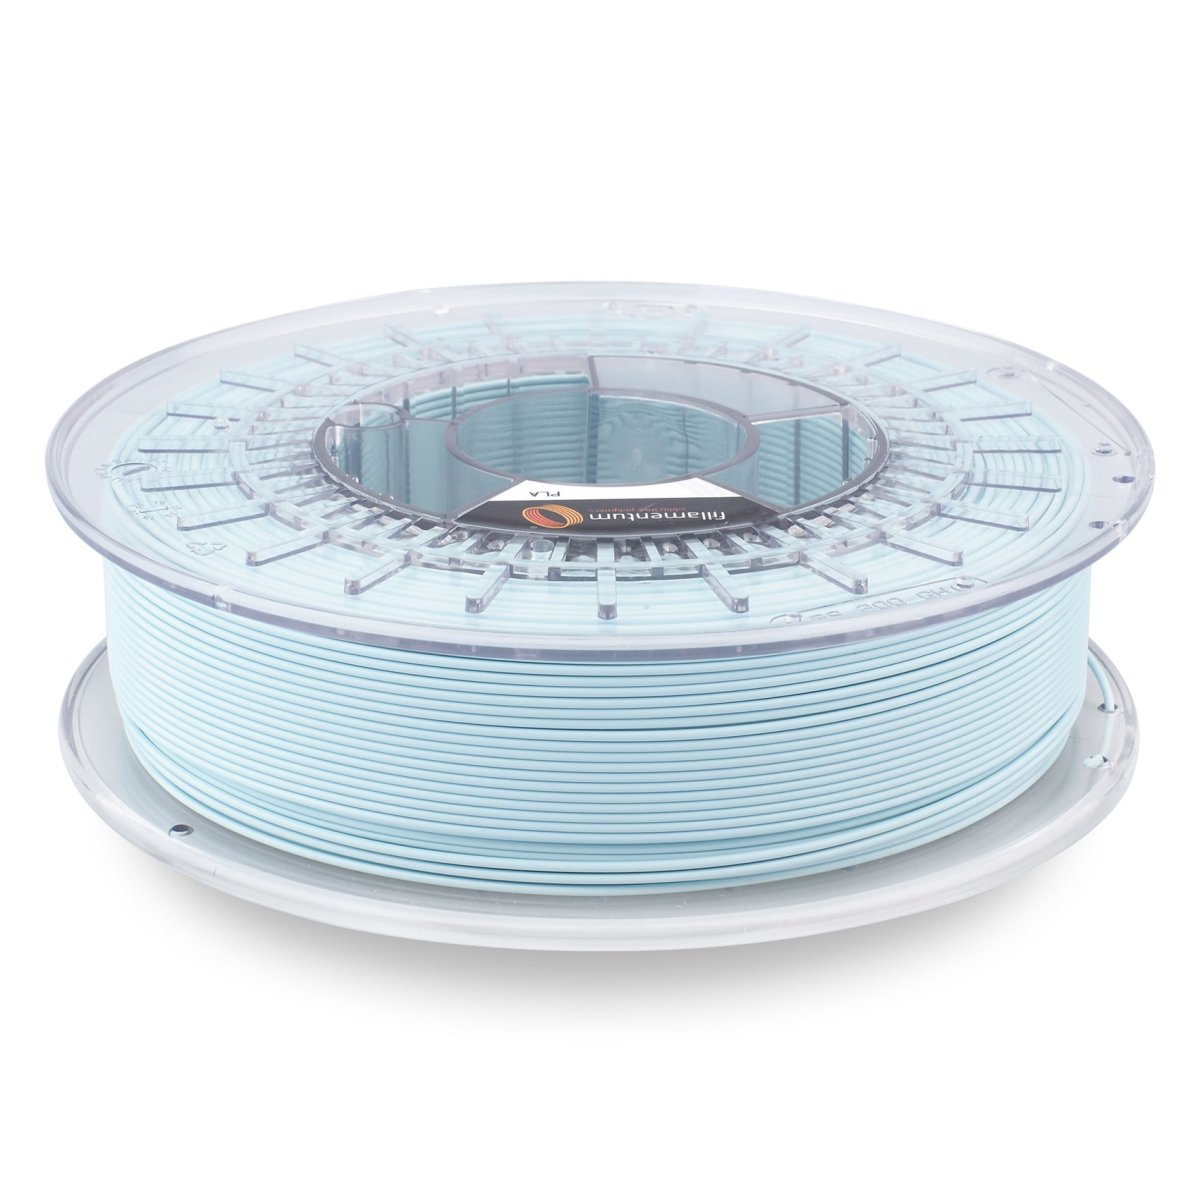 Fillamentum PLA Extrafill Baby Blue - 1 75mm - 750g Filament